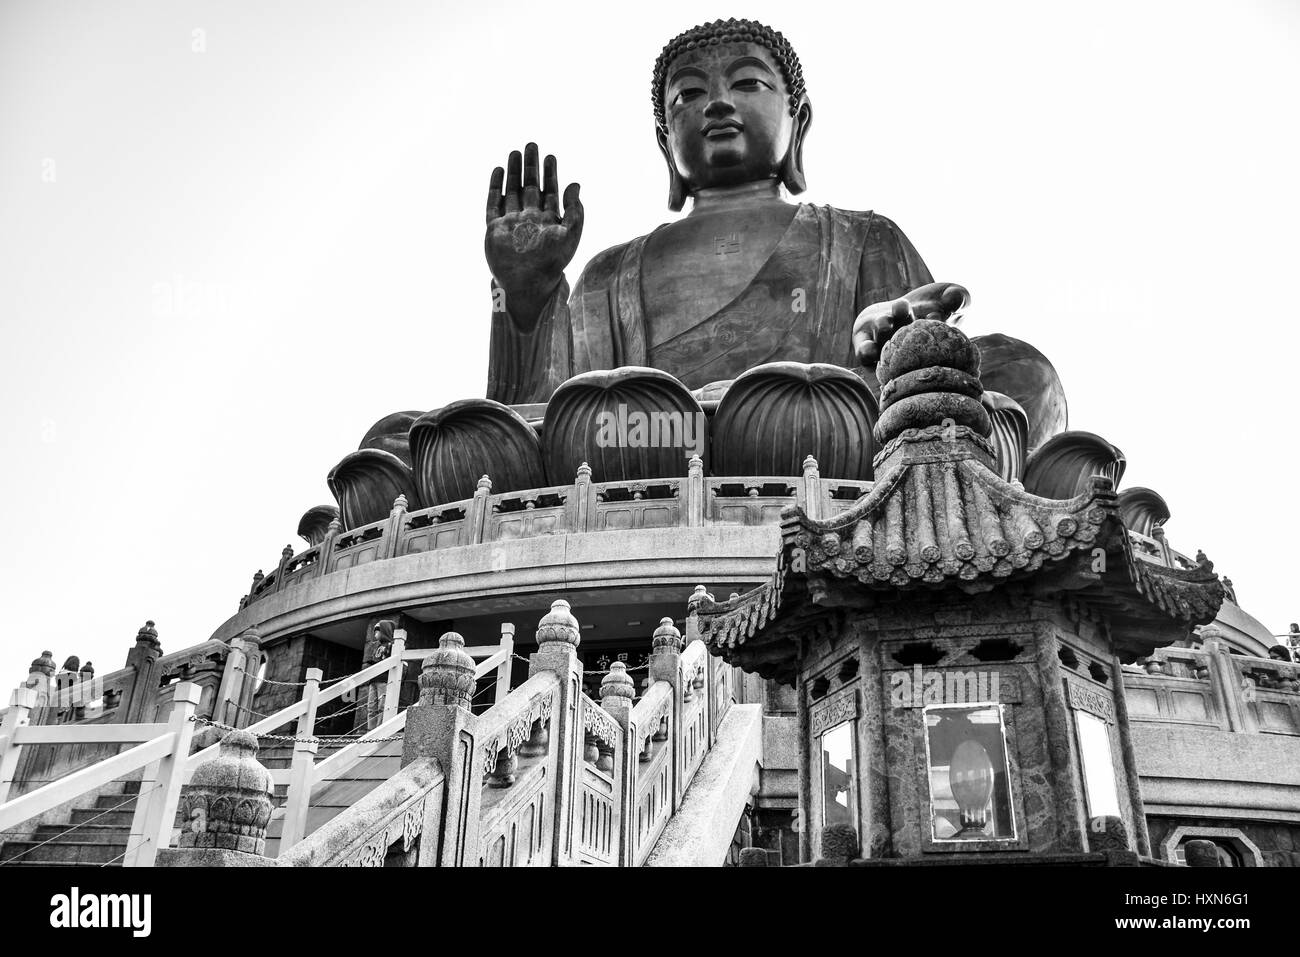 The enormous Tian Tan Buddha (Big Buddha) in black and white color at Po Lin monastery, Hong Kong with copy space - Stock Image